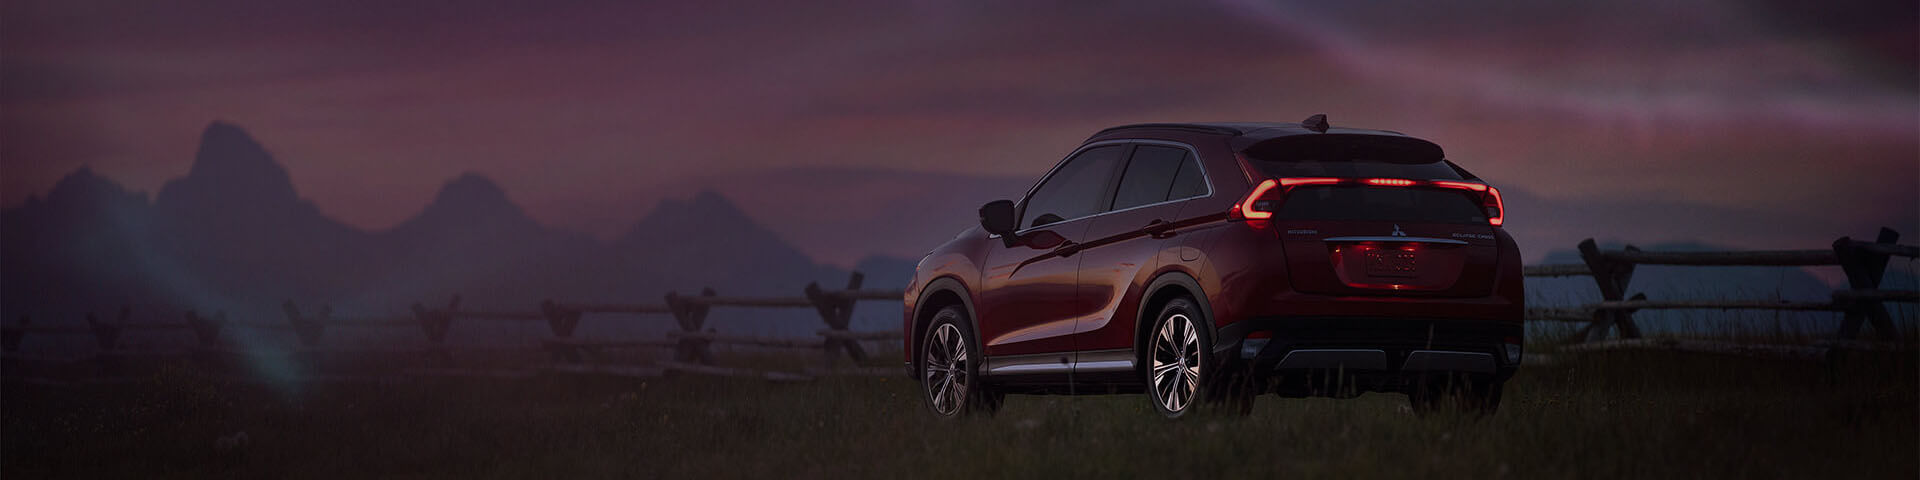 Mitsubishi Eclipse Cross at night.